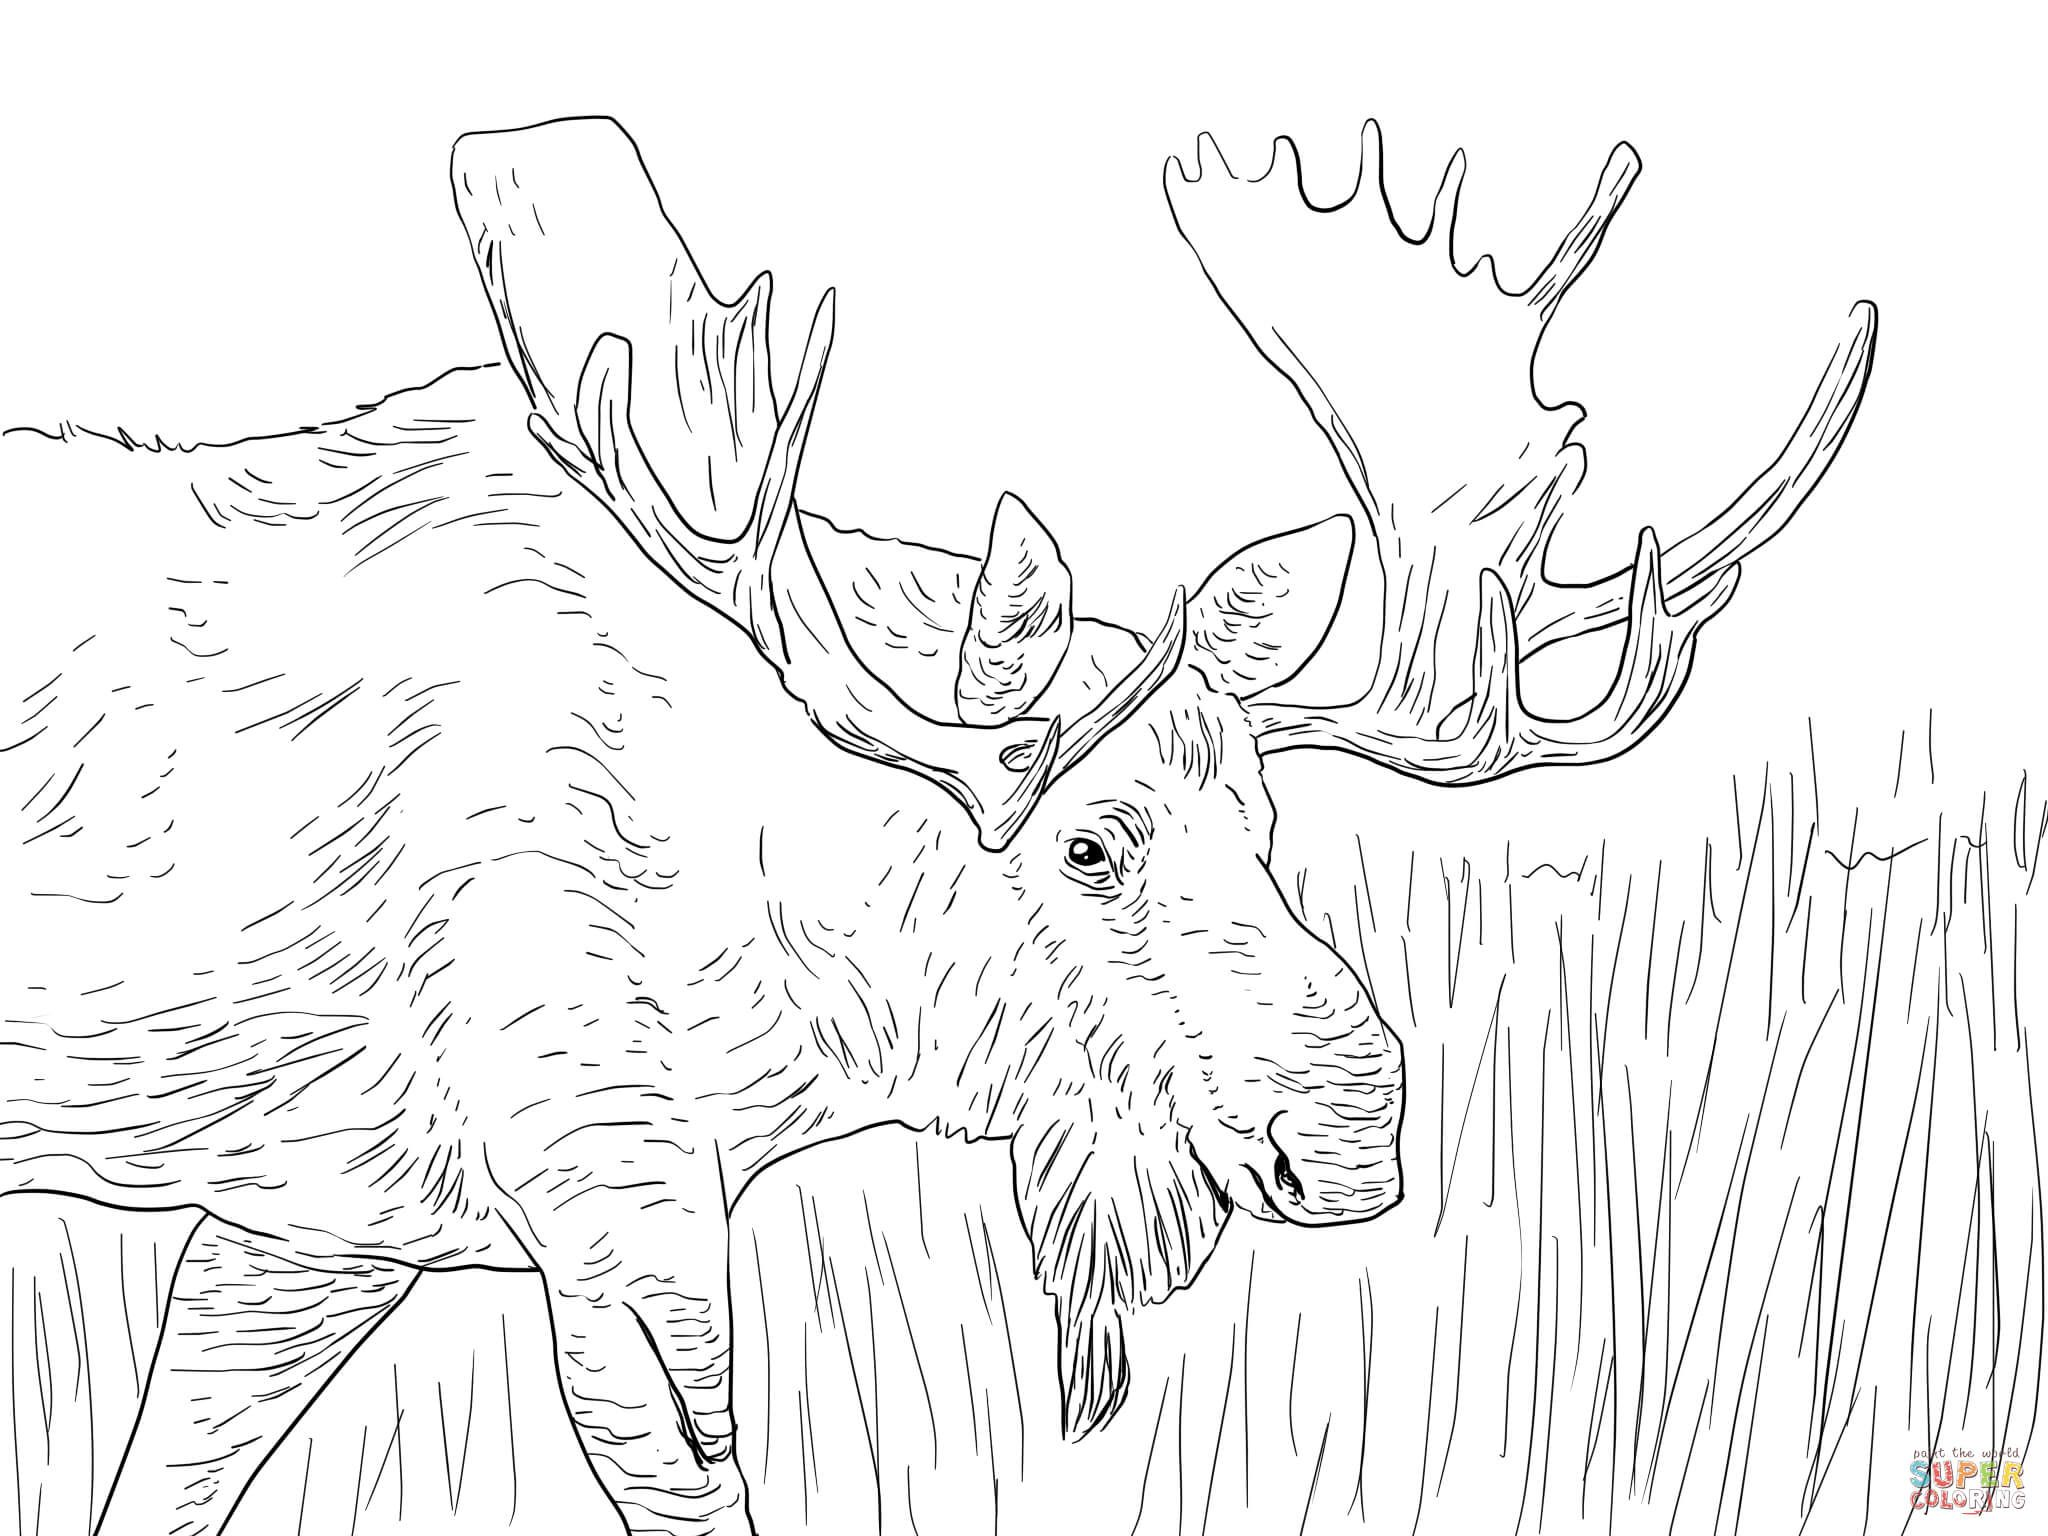 Bon Alaska Moose Coloring Page From Moose Category. Select From 28148 Printable  Crafts Of Cartoons, Nature, Animals, Bible And Many More.